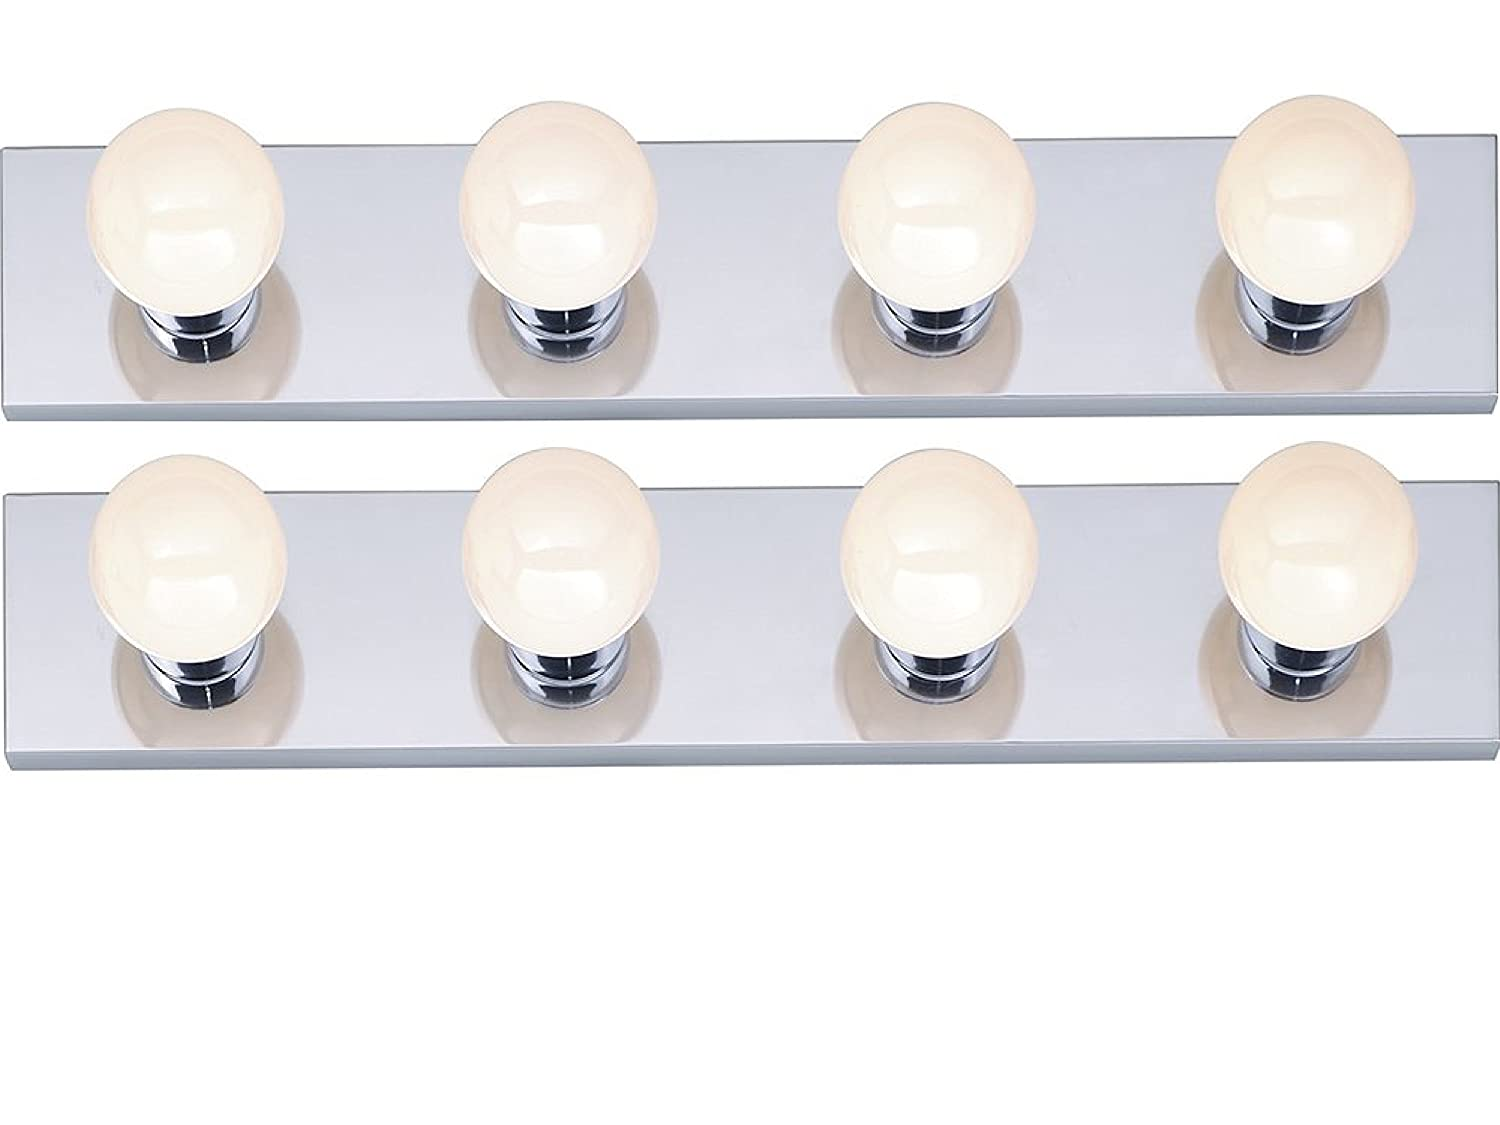 Vanity lighting fixtures amazon kitchen bath fixtures four light vanity aloadofball Choice Image